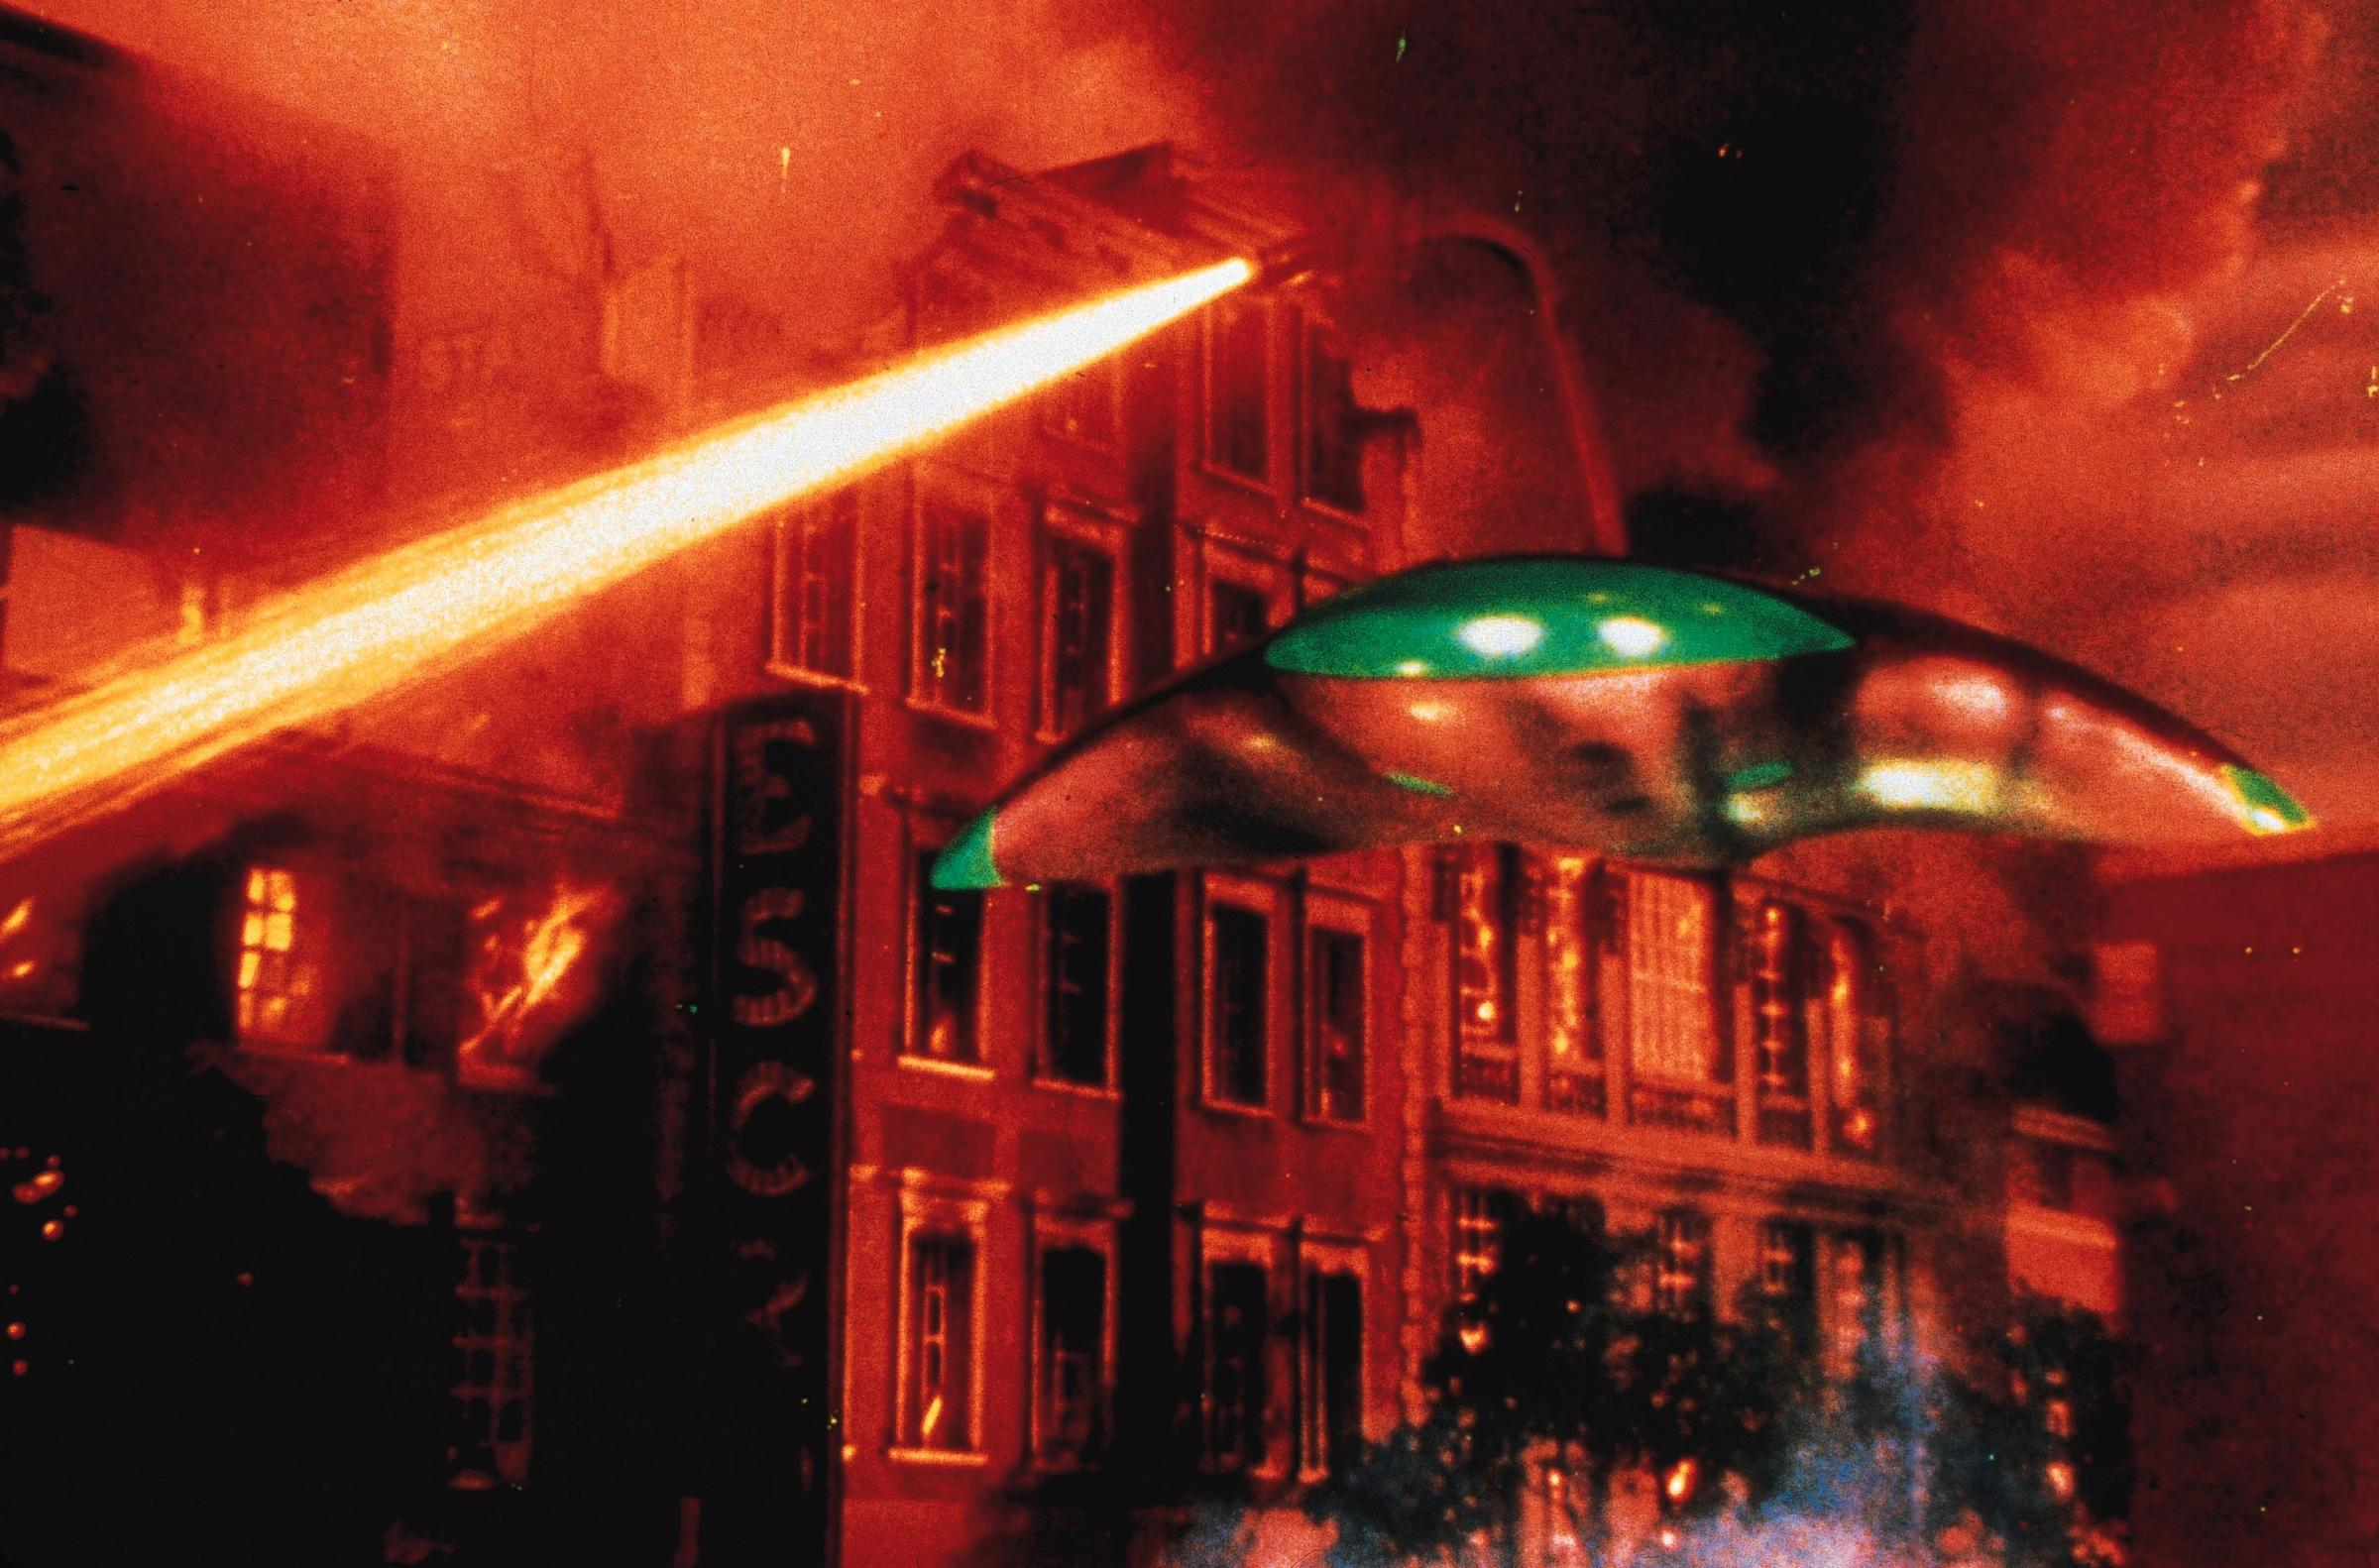 War of the Worlds, perhaps the most famous of Wells' work